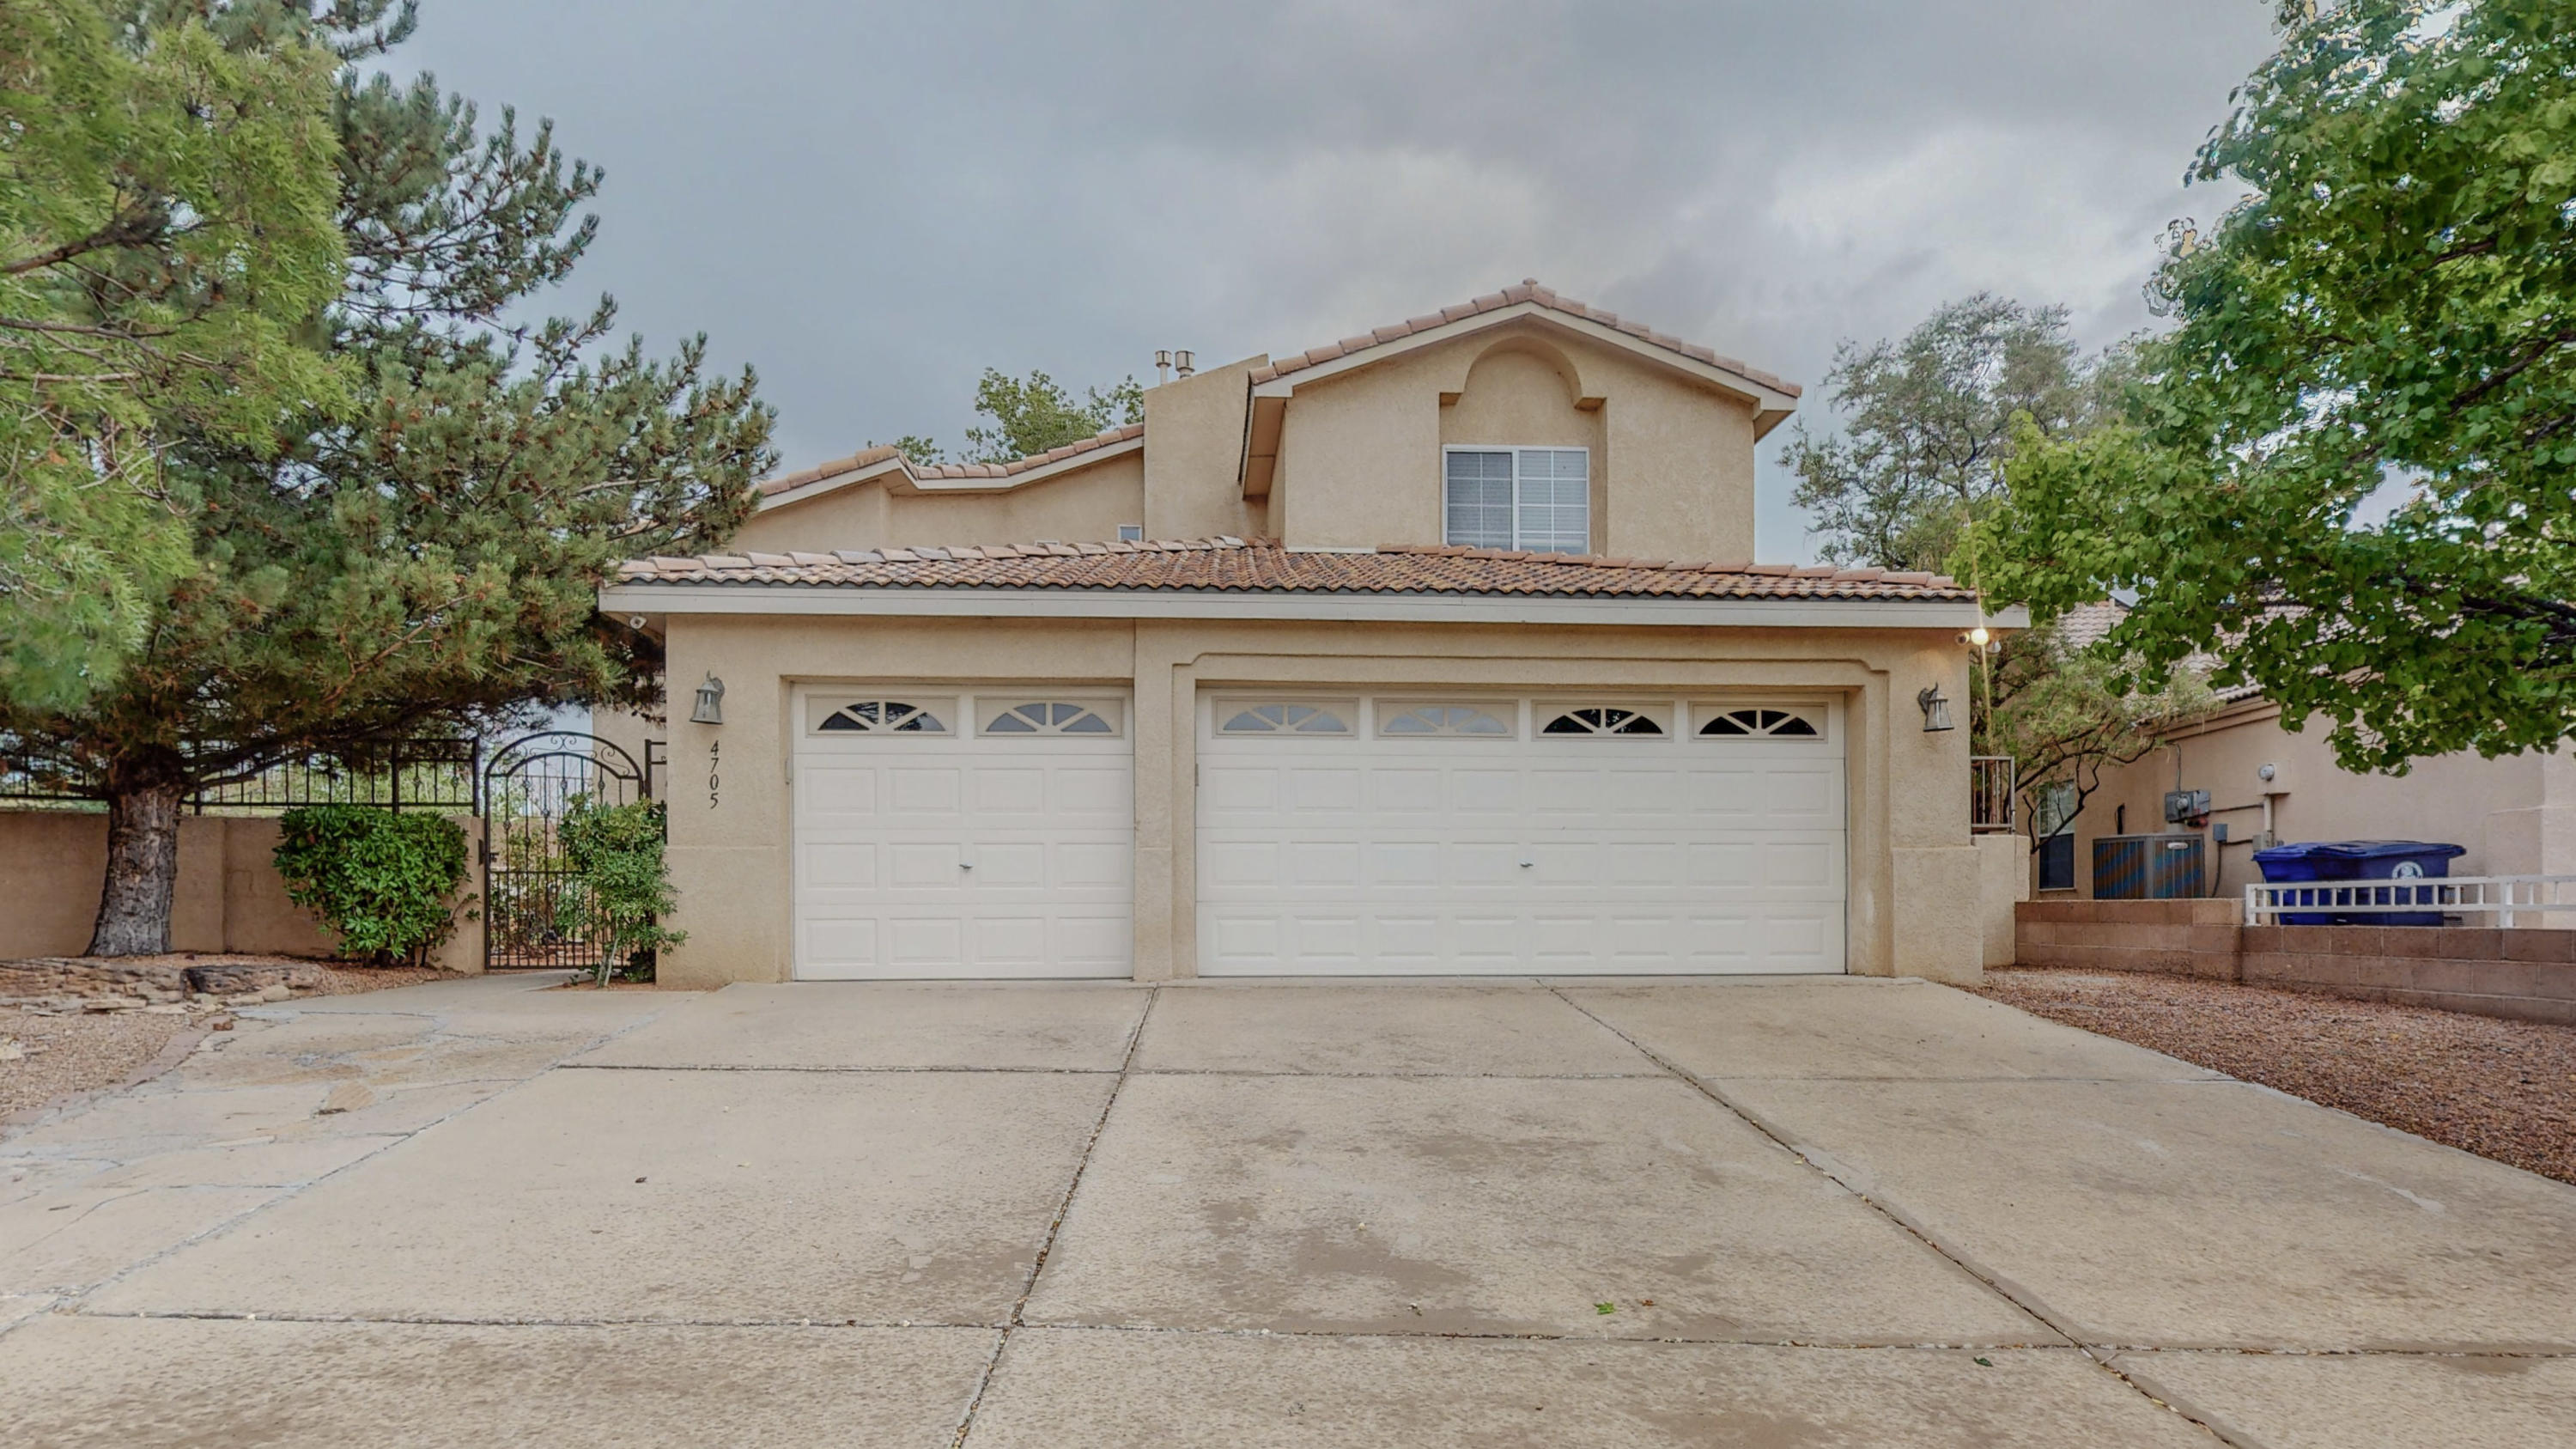 Price Reduced on this home located in a Culdesac lot.  With a 3 Car Garage in East Paradise Hills.  Private Courtyard entry.  High Ceilings, two living areas. Fireplace in family room off the kitchen.  Stainless steel appliances.  Laminate Flooring and Ceramic tile throughout, (no carpet). The downstairs study can easily be converted into a 4th bedroom. Master has it's own fireplace and balcony.  covered patio, flower beds, water feature.